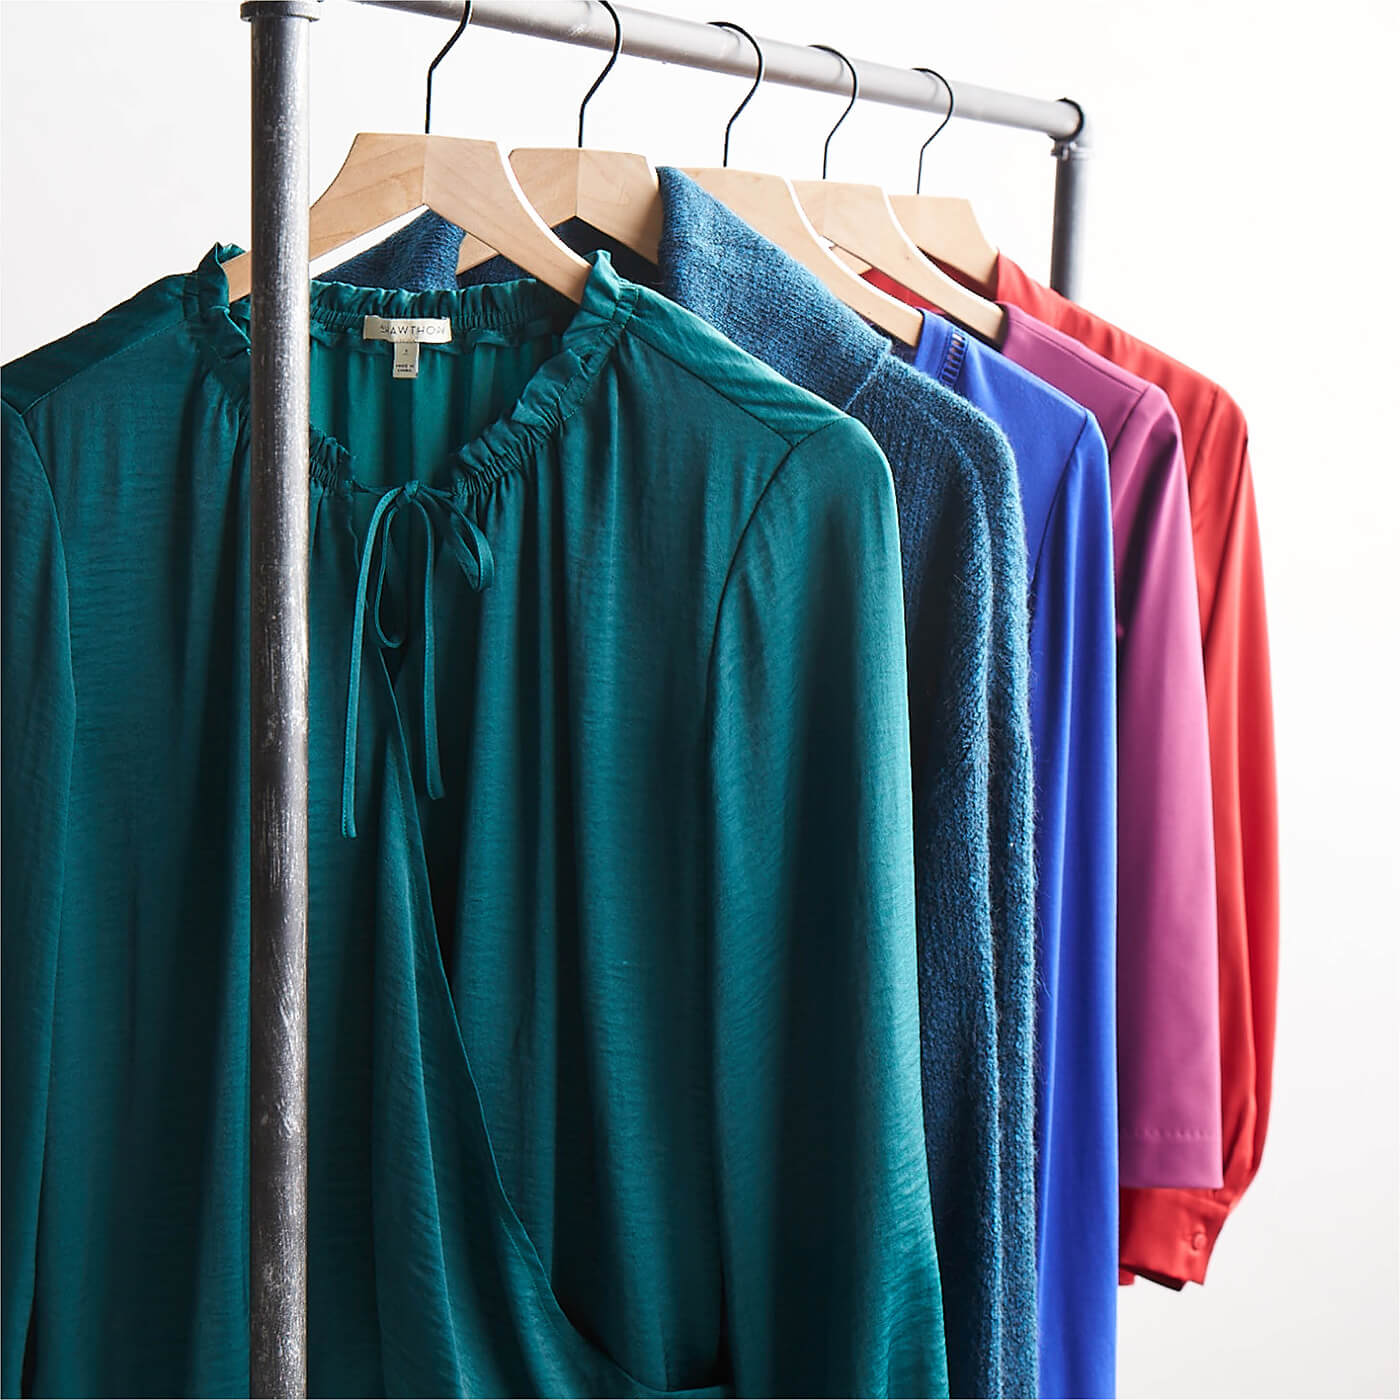 The ultimate guide to jewel tones stitch fix style - What are jewel tones ...